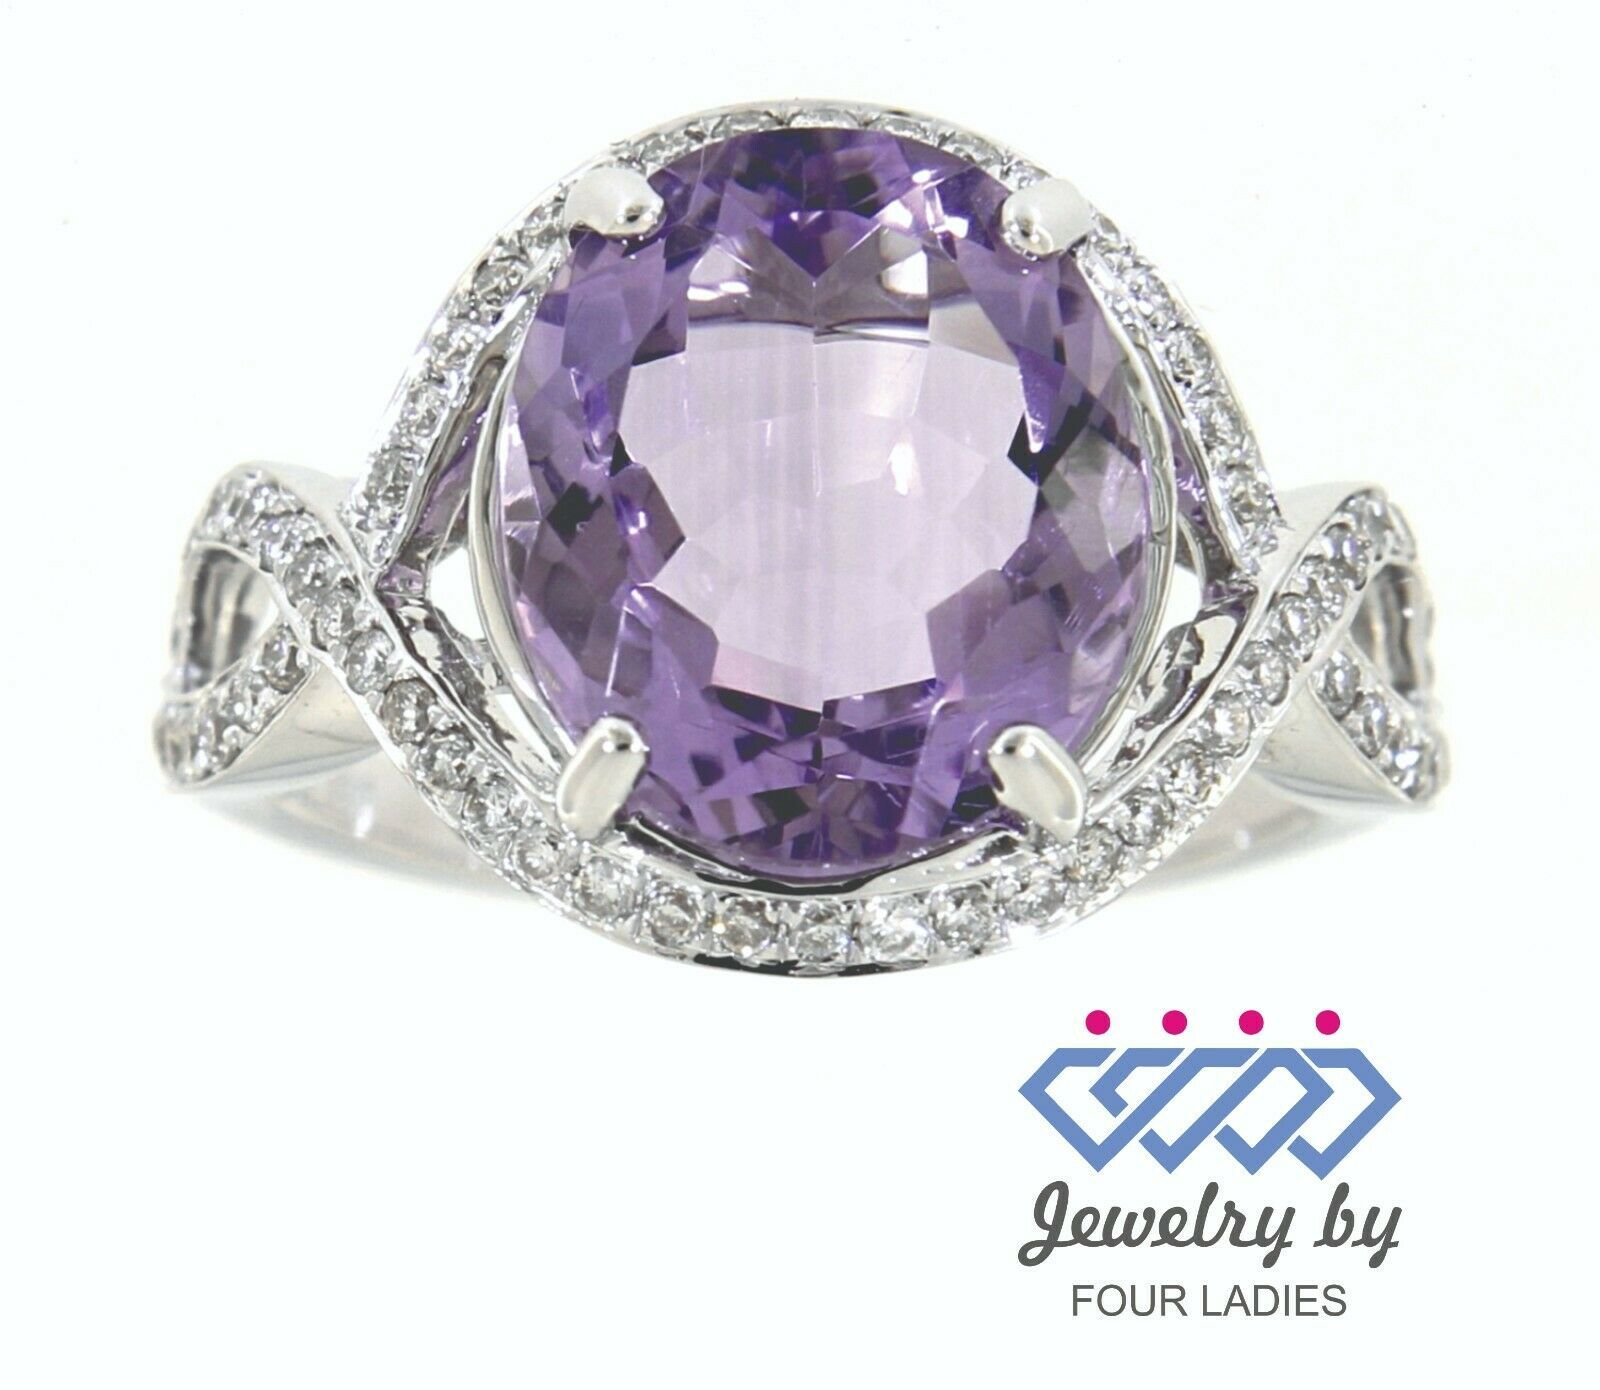 Primary image for Amethyst Birthstone 14K White Gold 4.04CT Natural Diamond Designer Ring